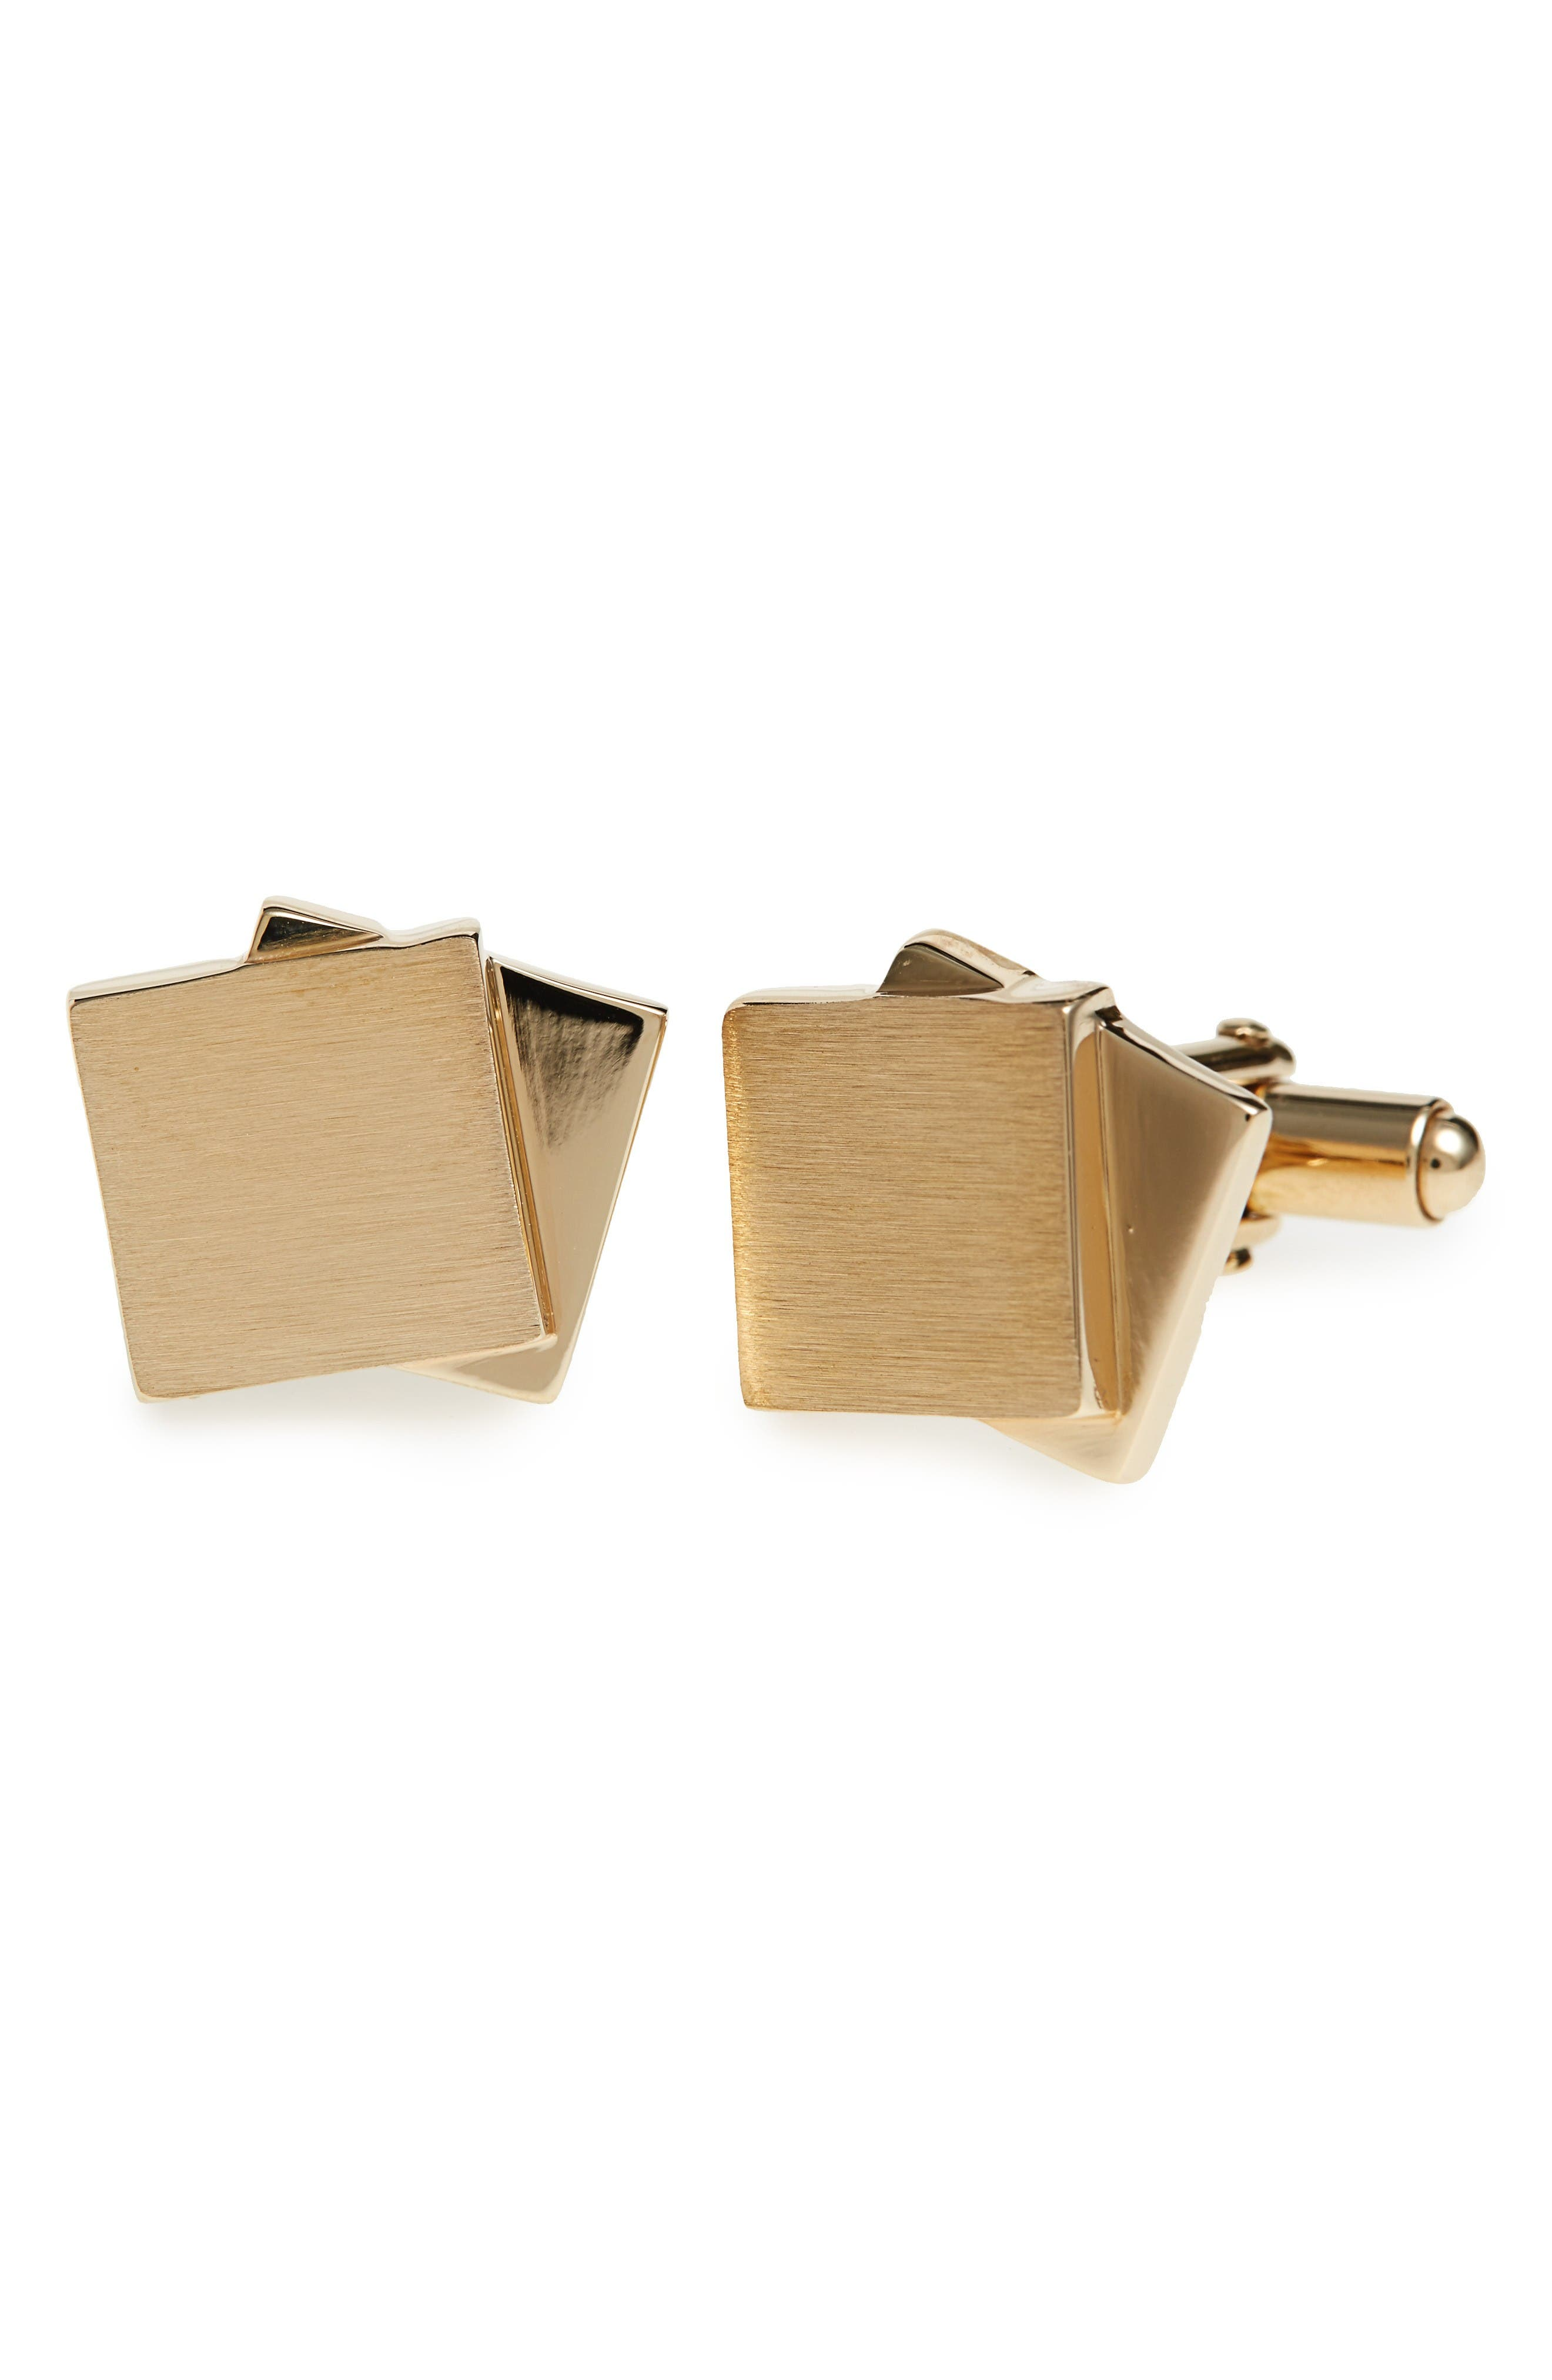 LANVIN Dual Plaques Cuff Links